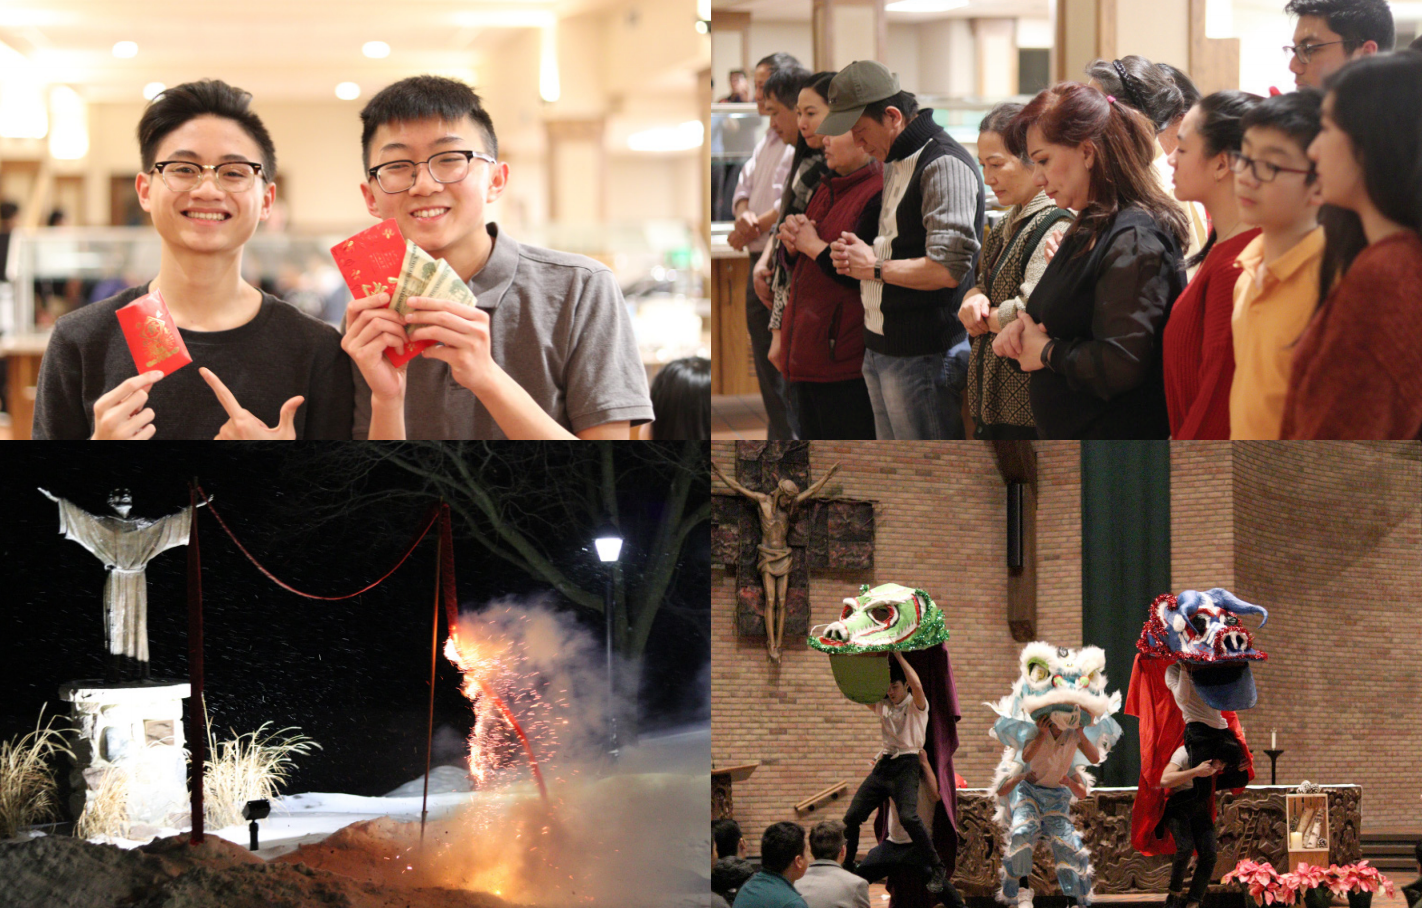 a compilation of photos showing the celebration of Tet: boys holding lucky money, a family in line, fireworks and performers wearing dragon costumes